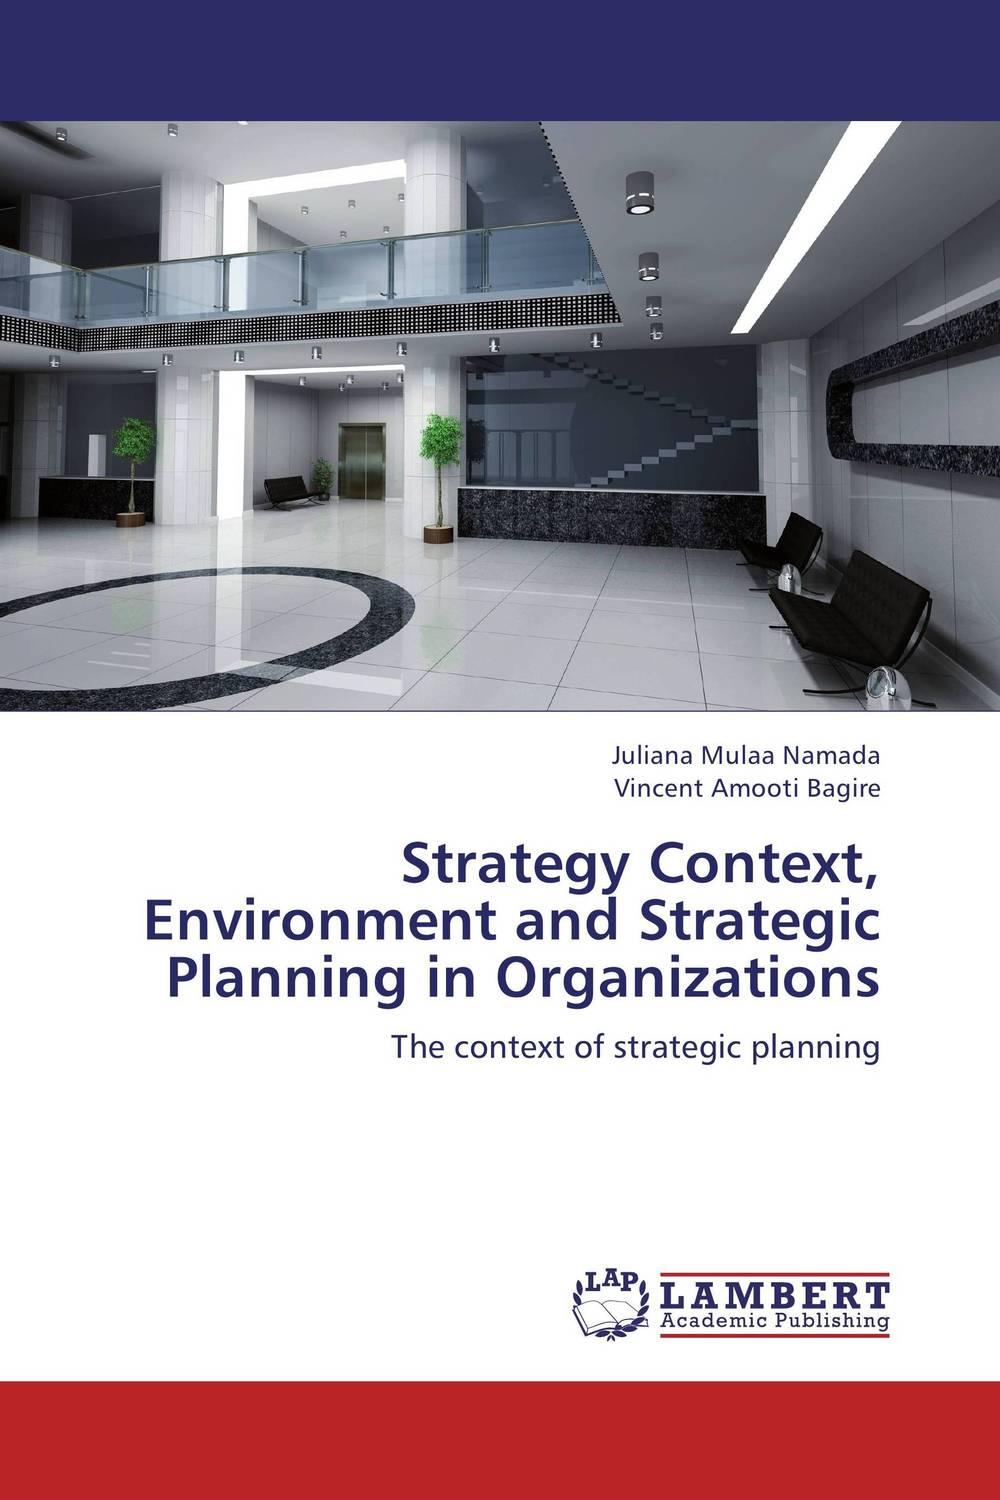 Strategy Context, Environment and Strategic Planning in Organizations jeffrey sampler l bringing strategy back how strategic shock absorbers make planning relevant in a world of constant change